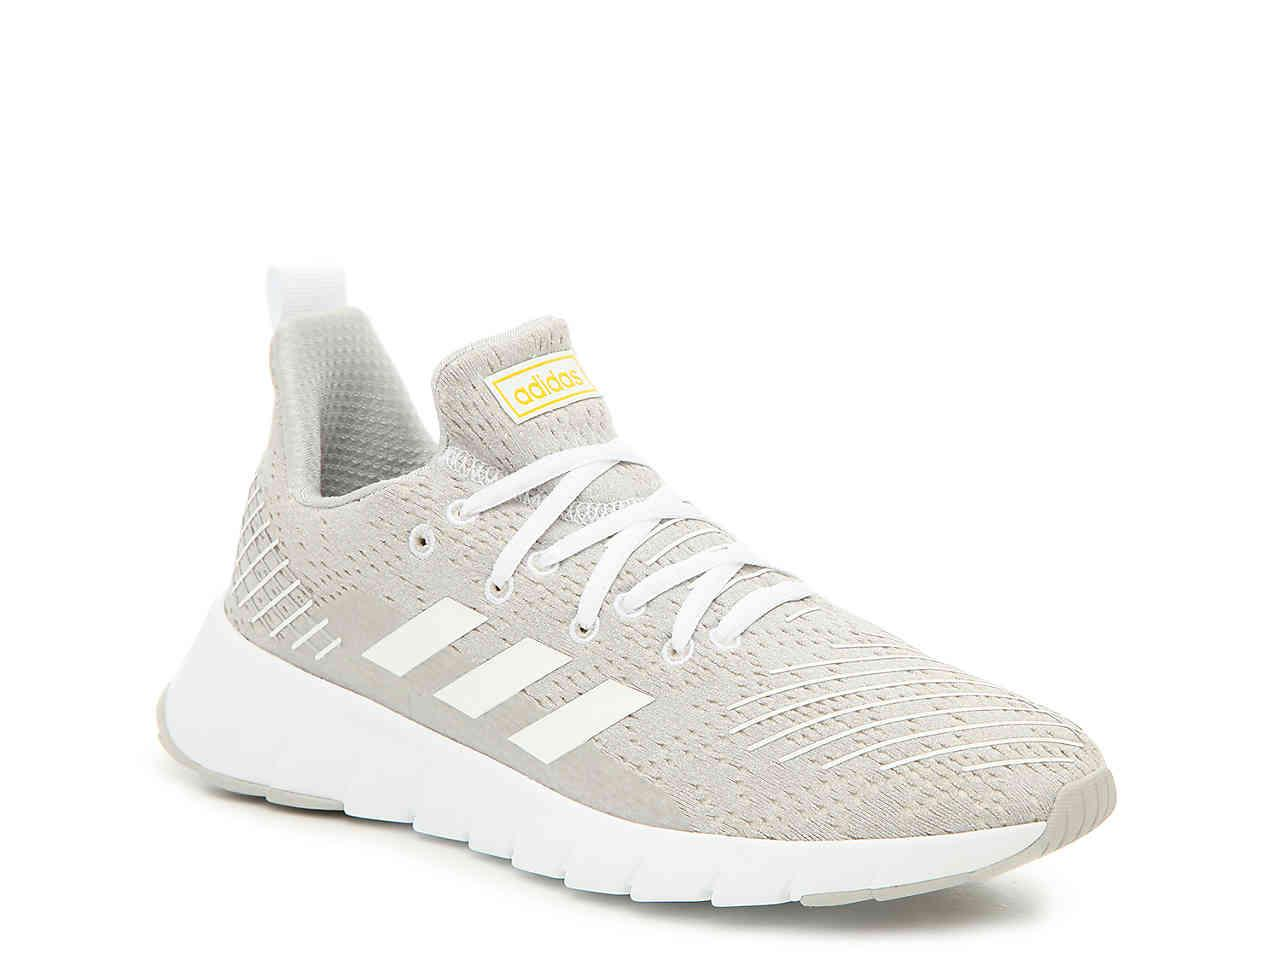 Lyst - Adidas Asweego Running Shoe in White d9ec043c8